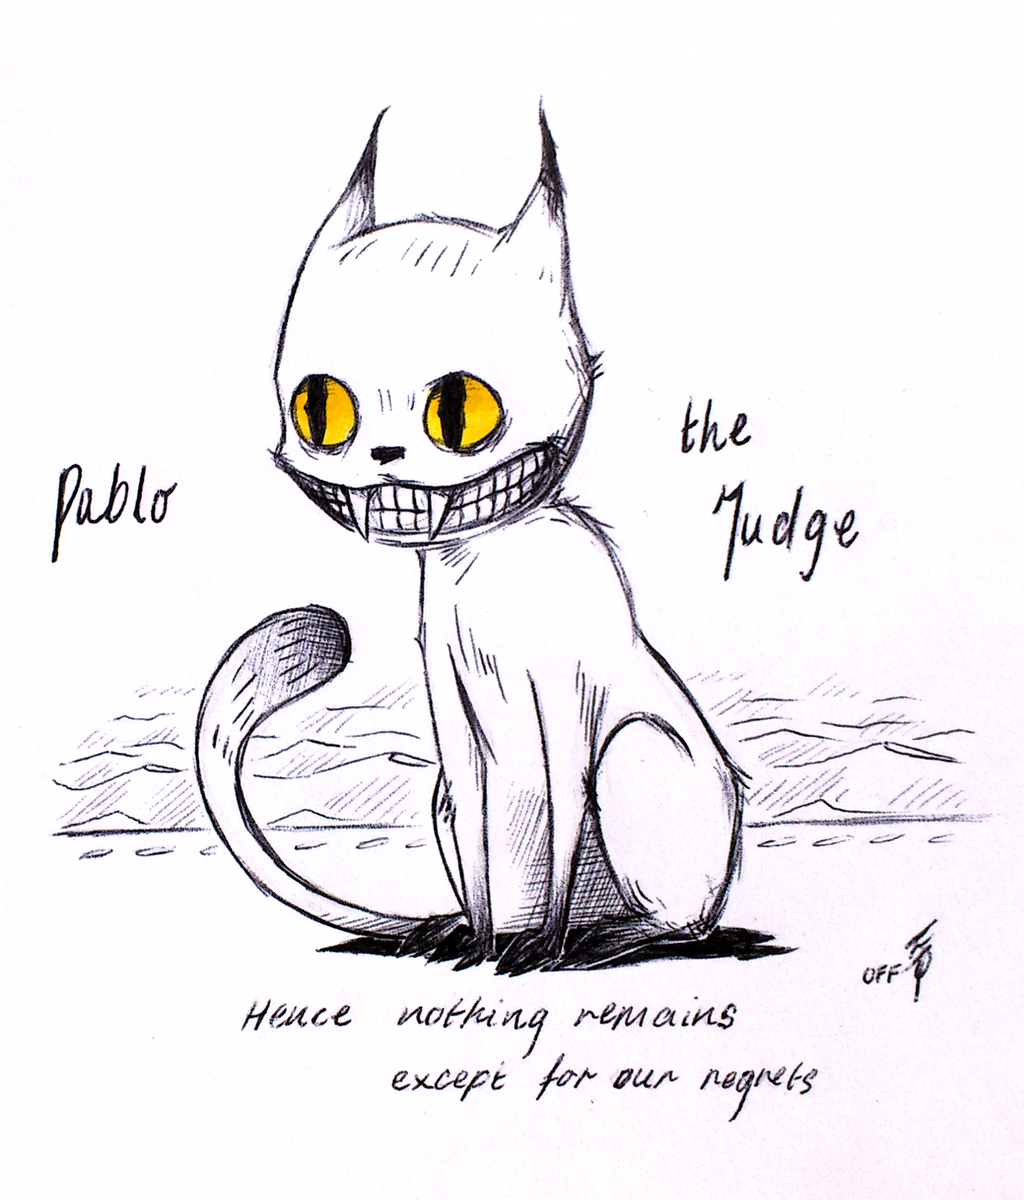 pablo the judge by venterry on deviantart